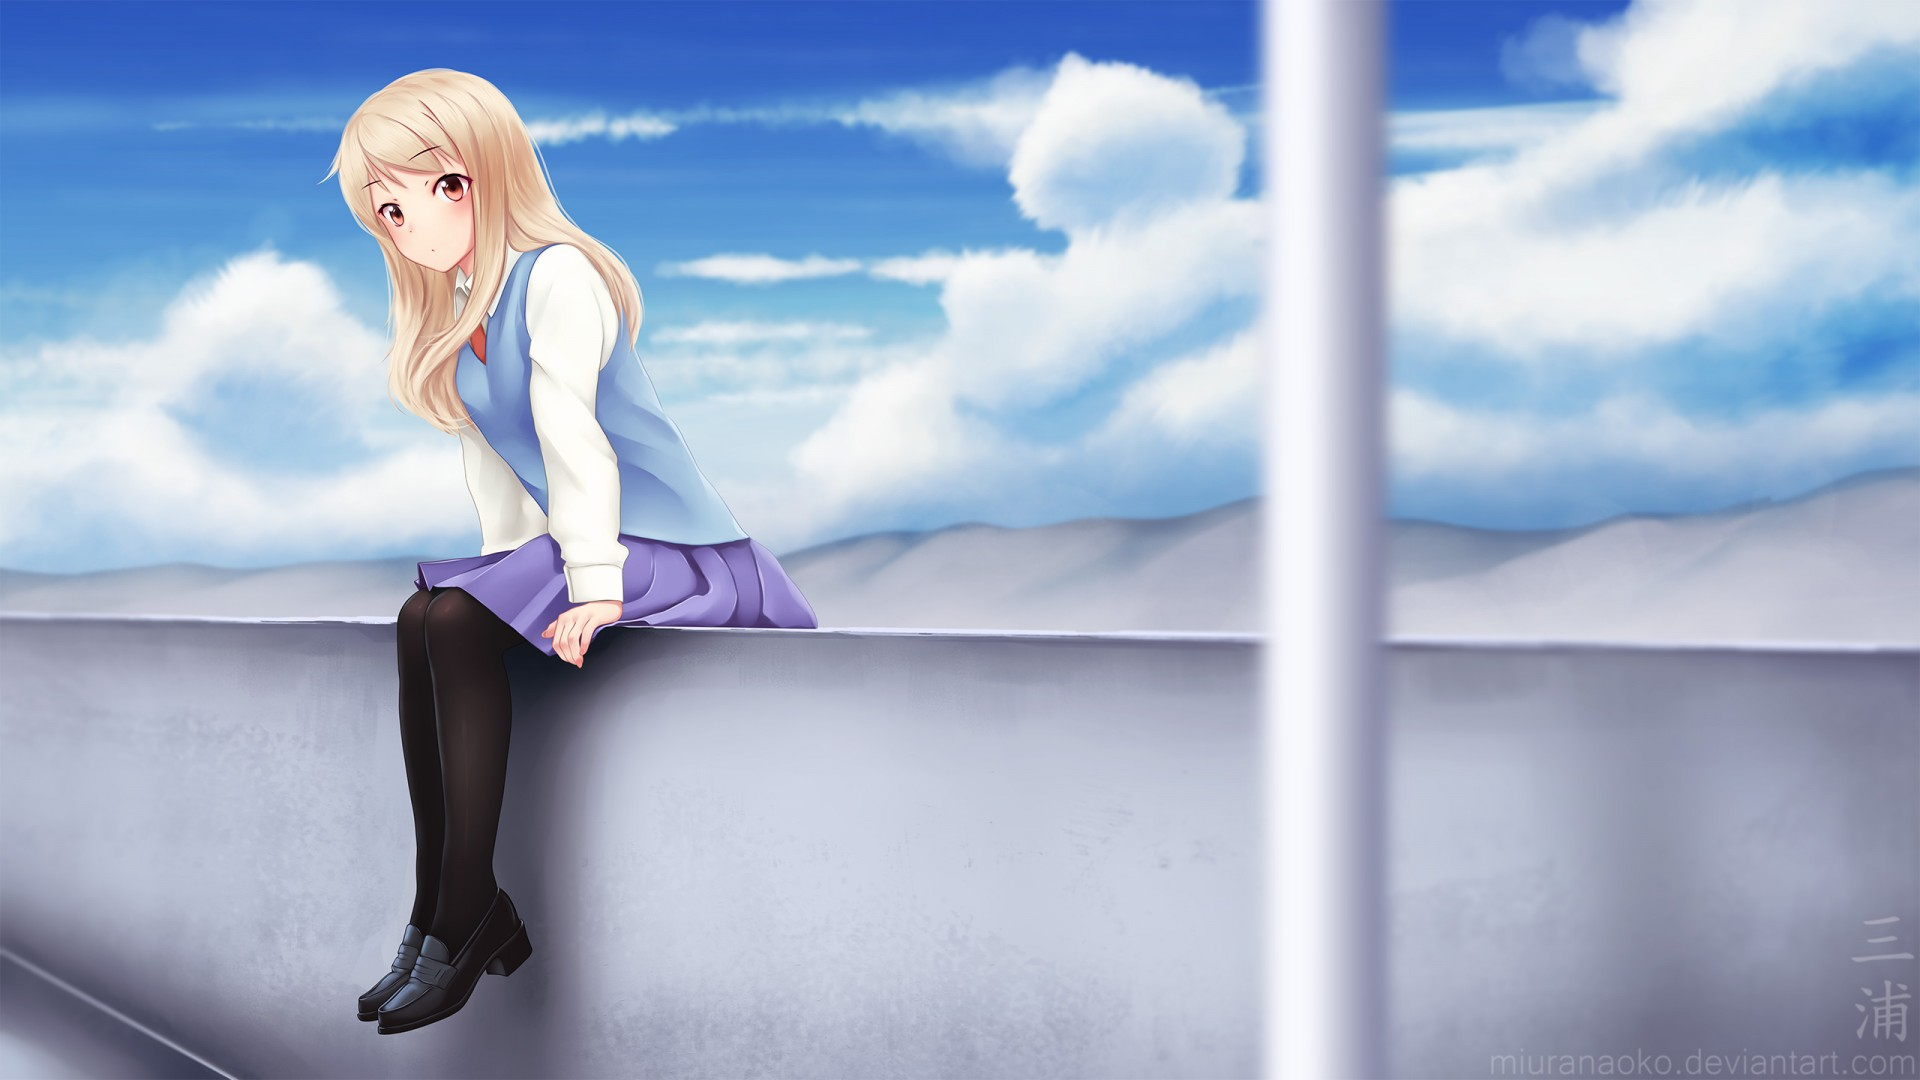 School Girl Anime Fantasy HD Images HD Wallpapers Download 1920x1080